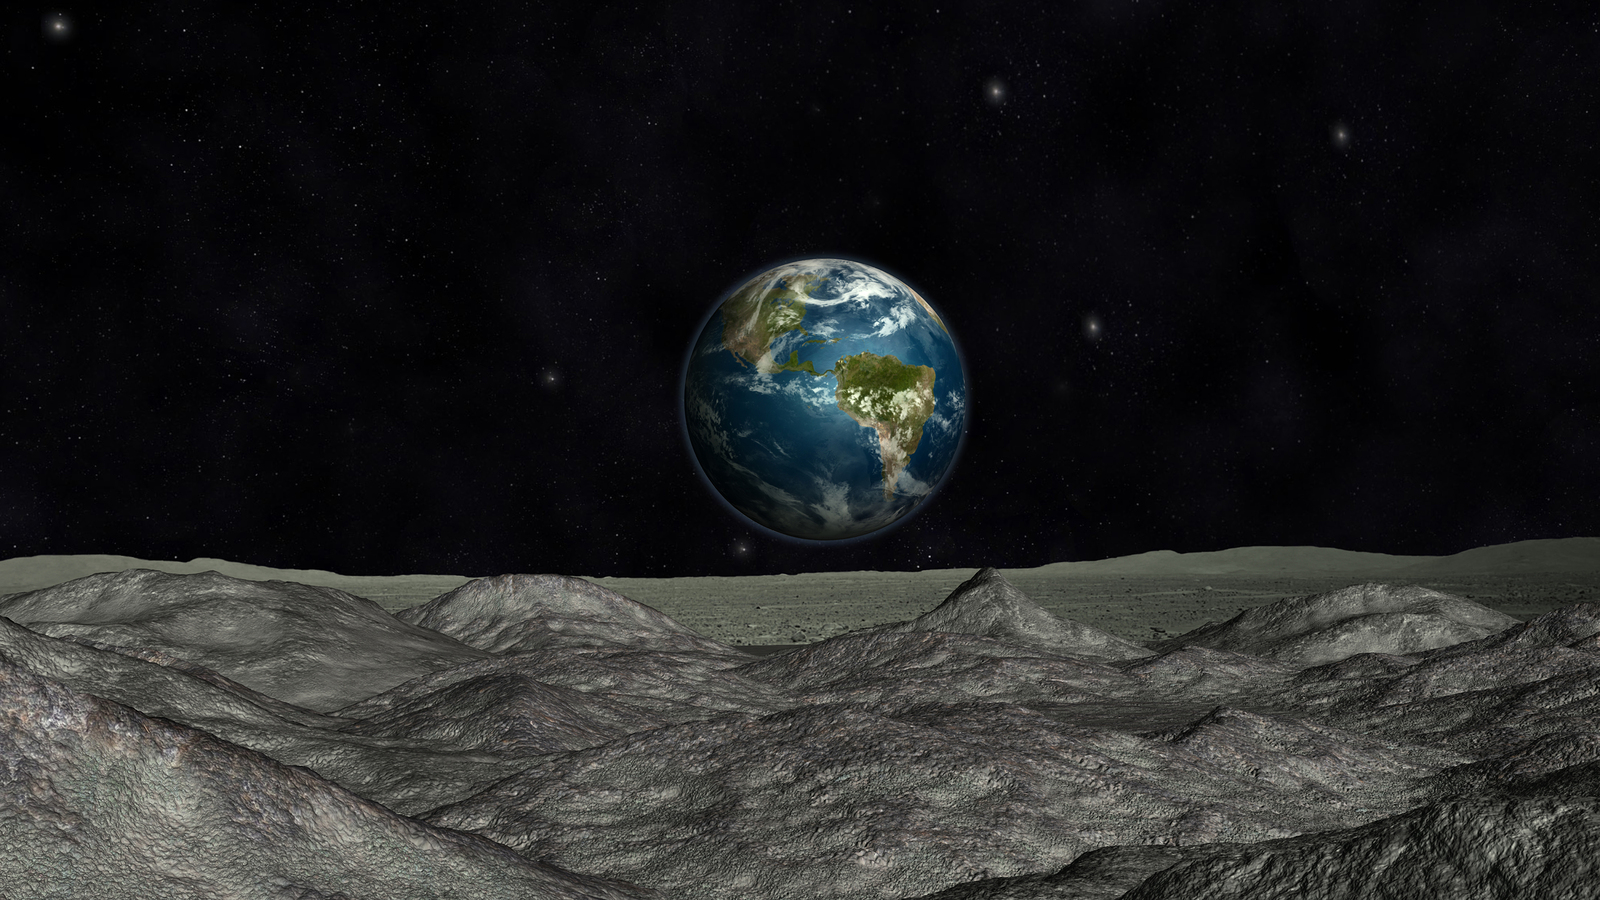 View from a comet approaching Earth.